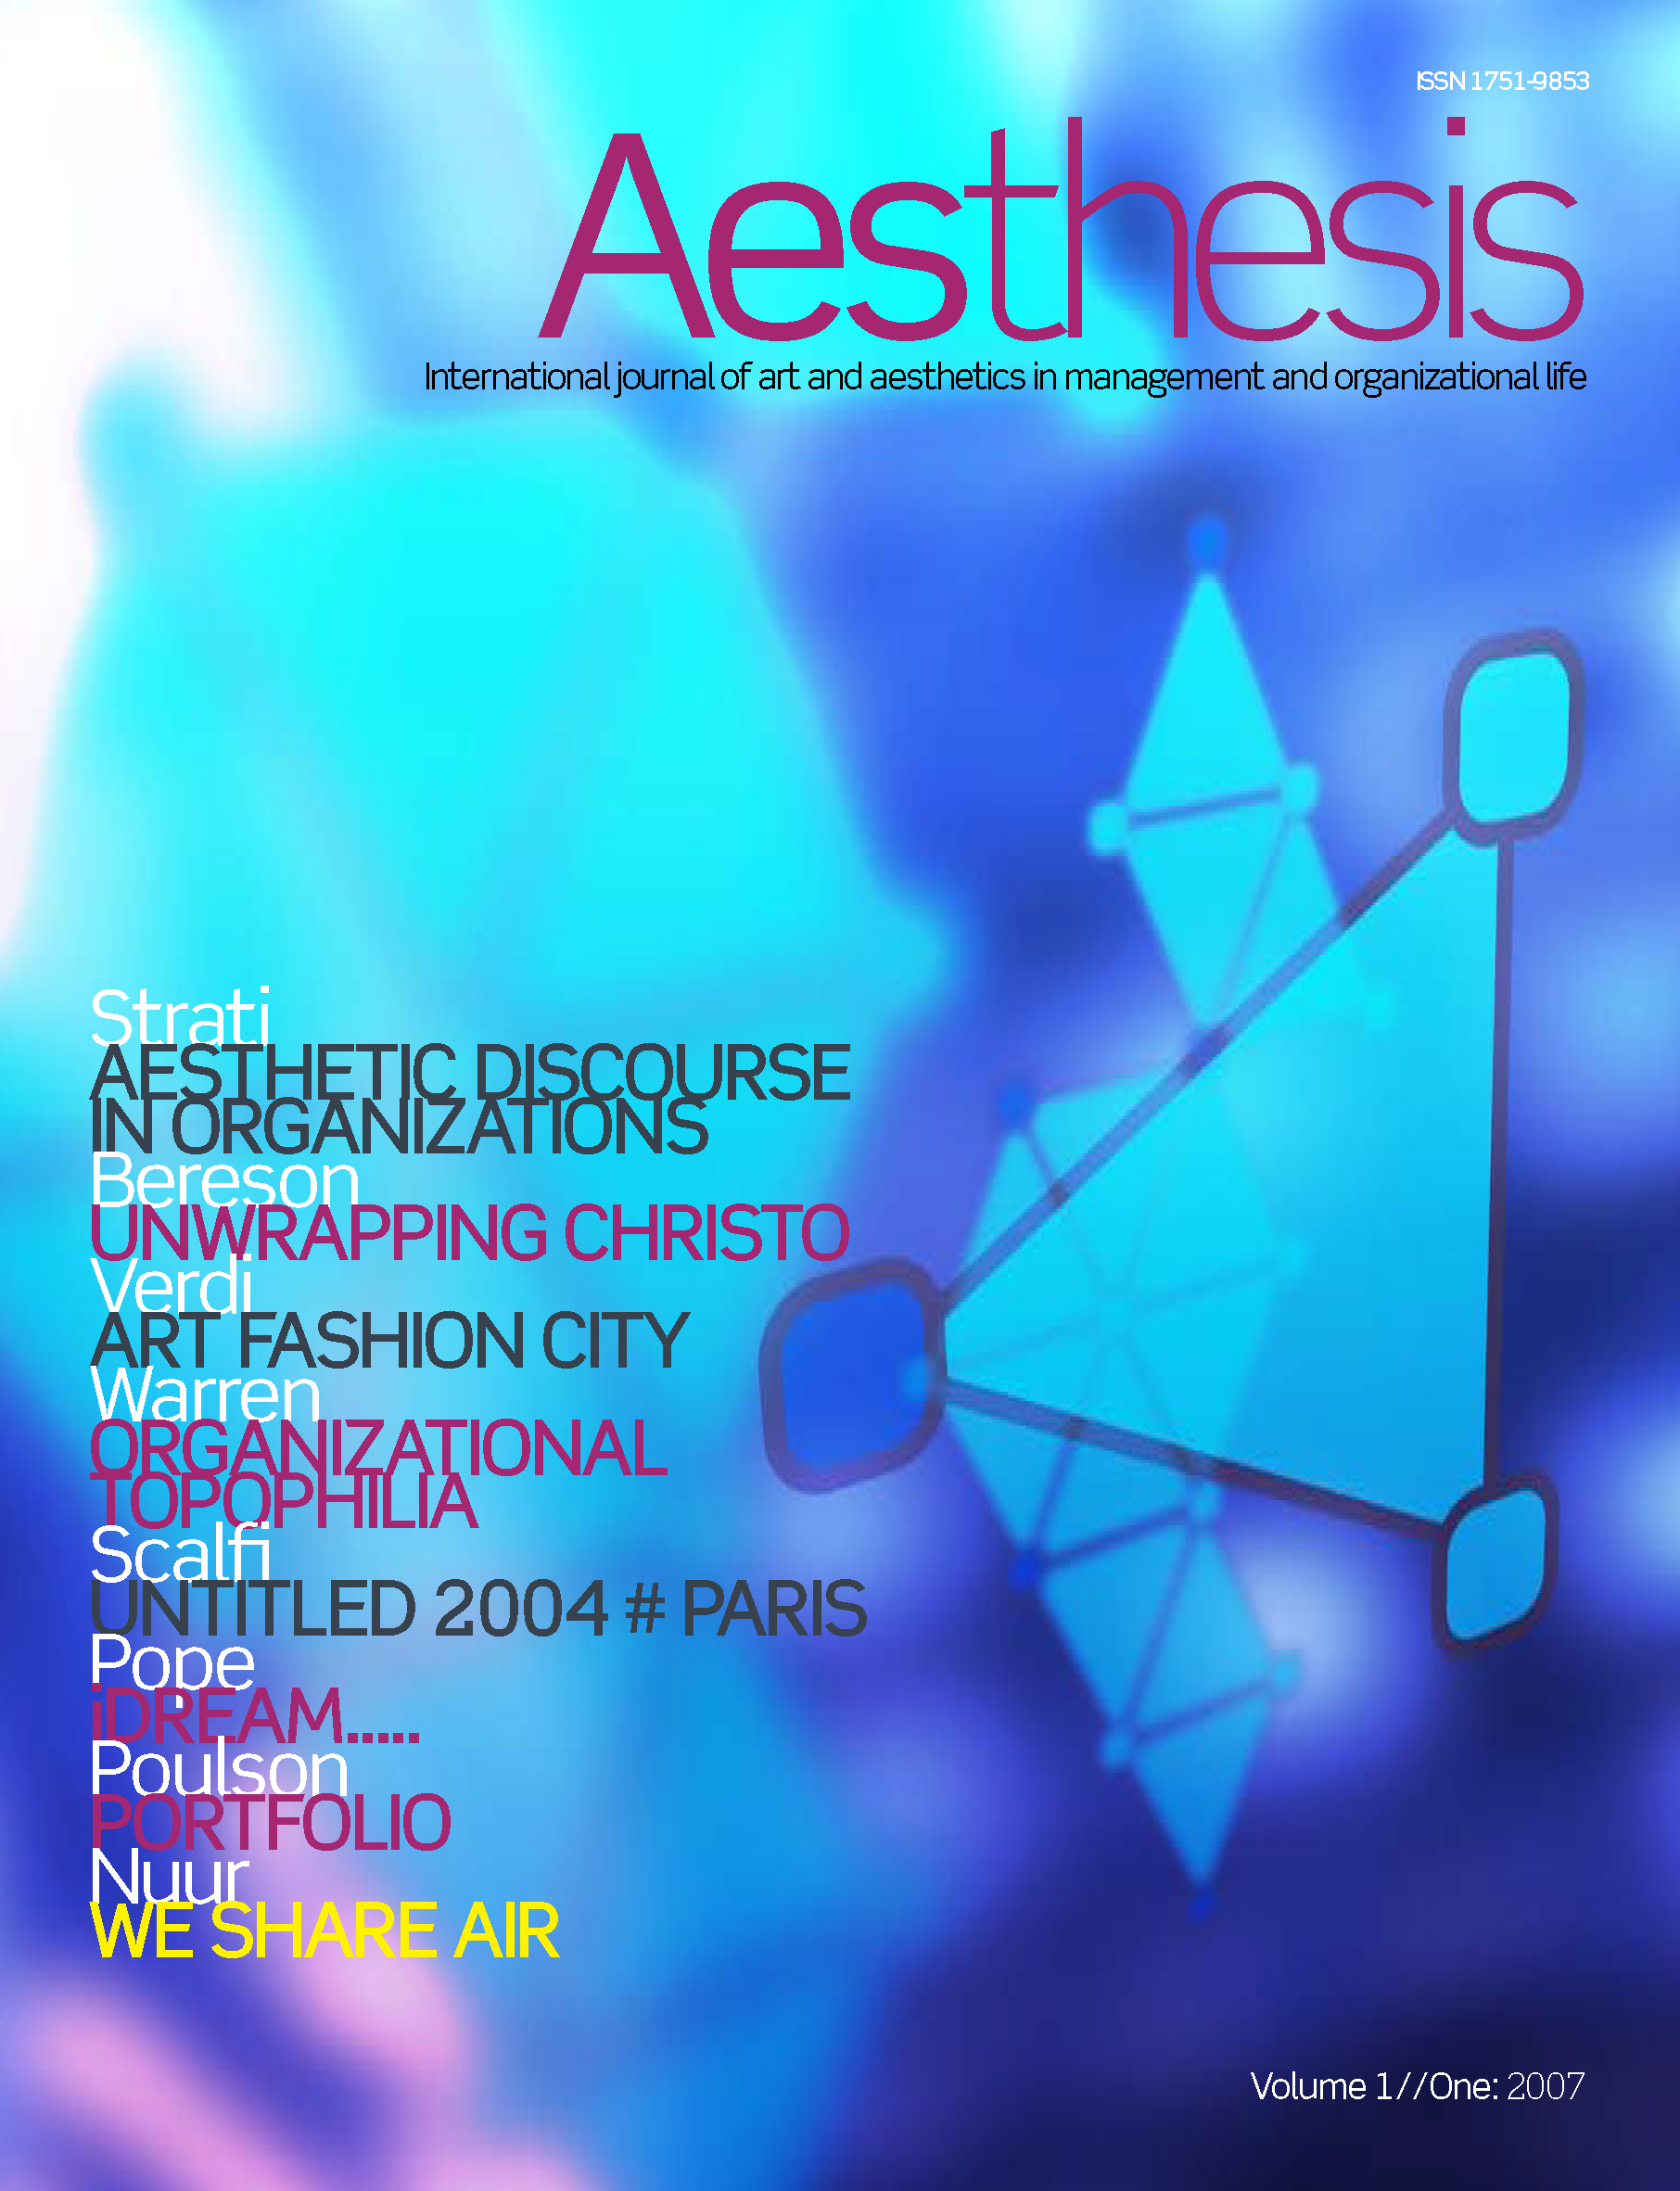 Aesthesis Vol. 1 Iss. 1